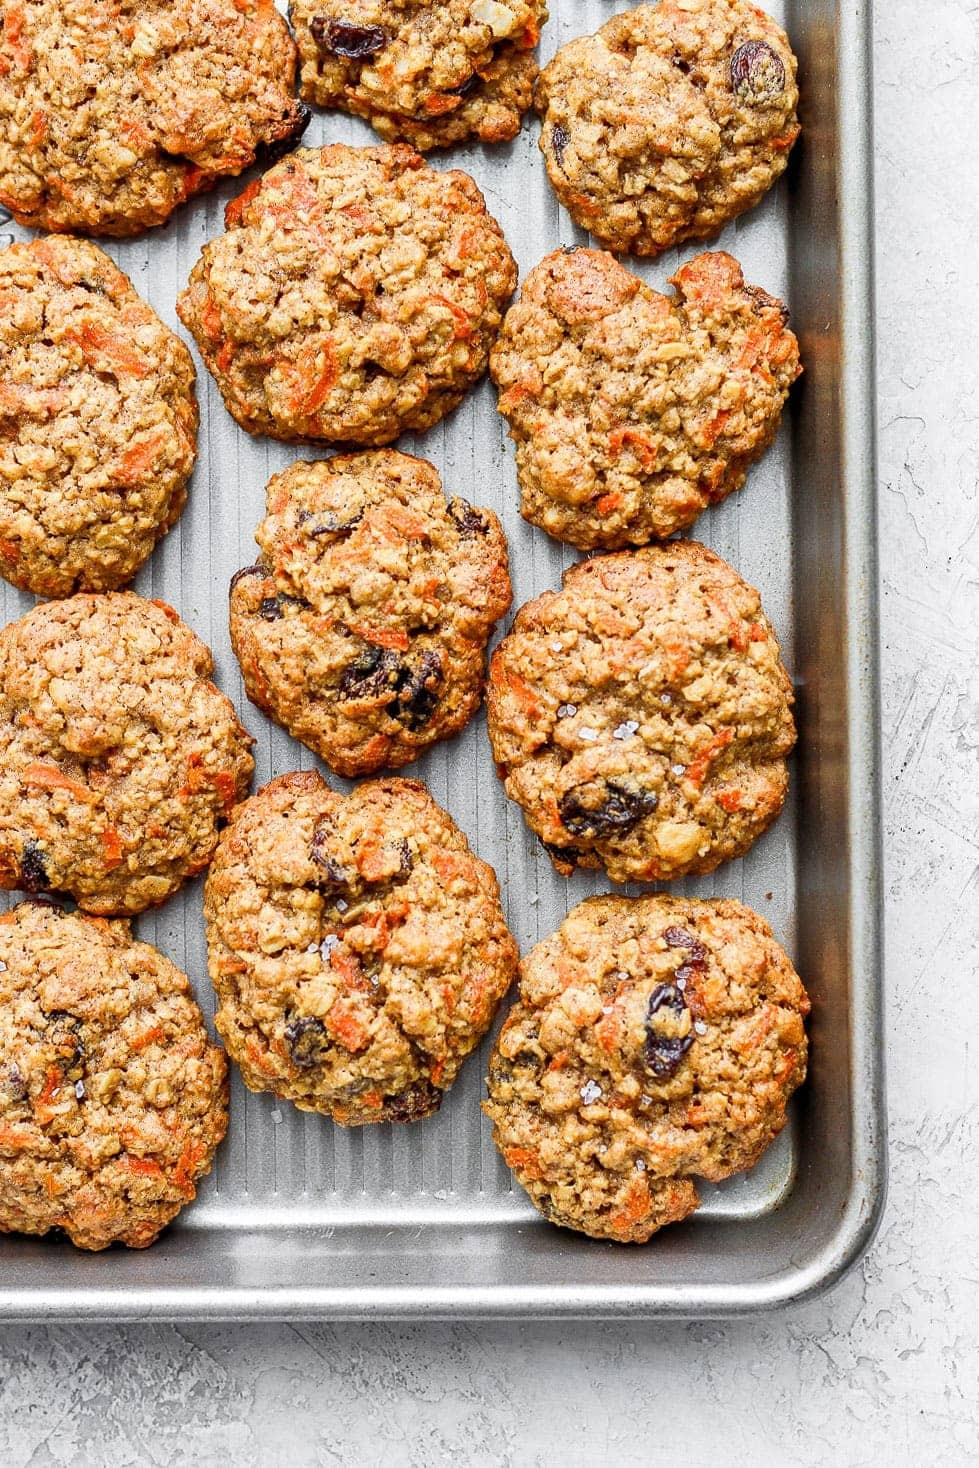 Baked carrot cake cookies